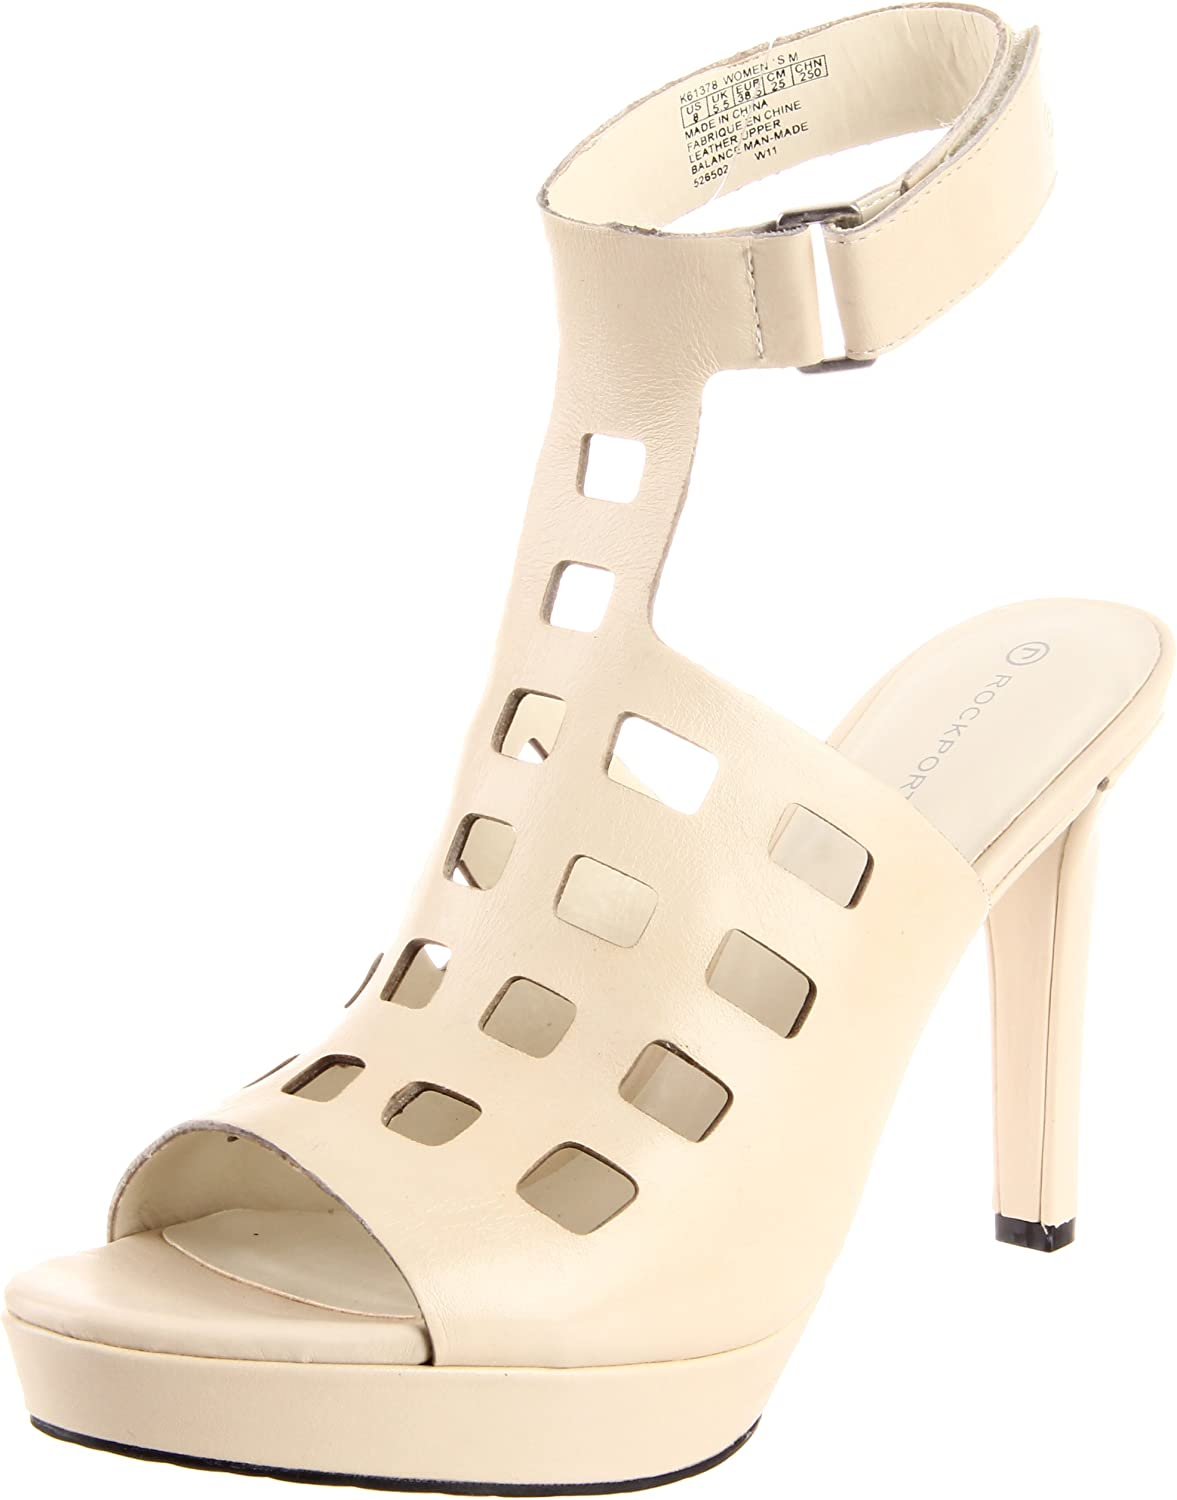 Rockport Women's Janae Square Perforated Sandal